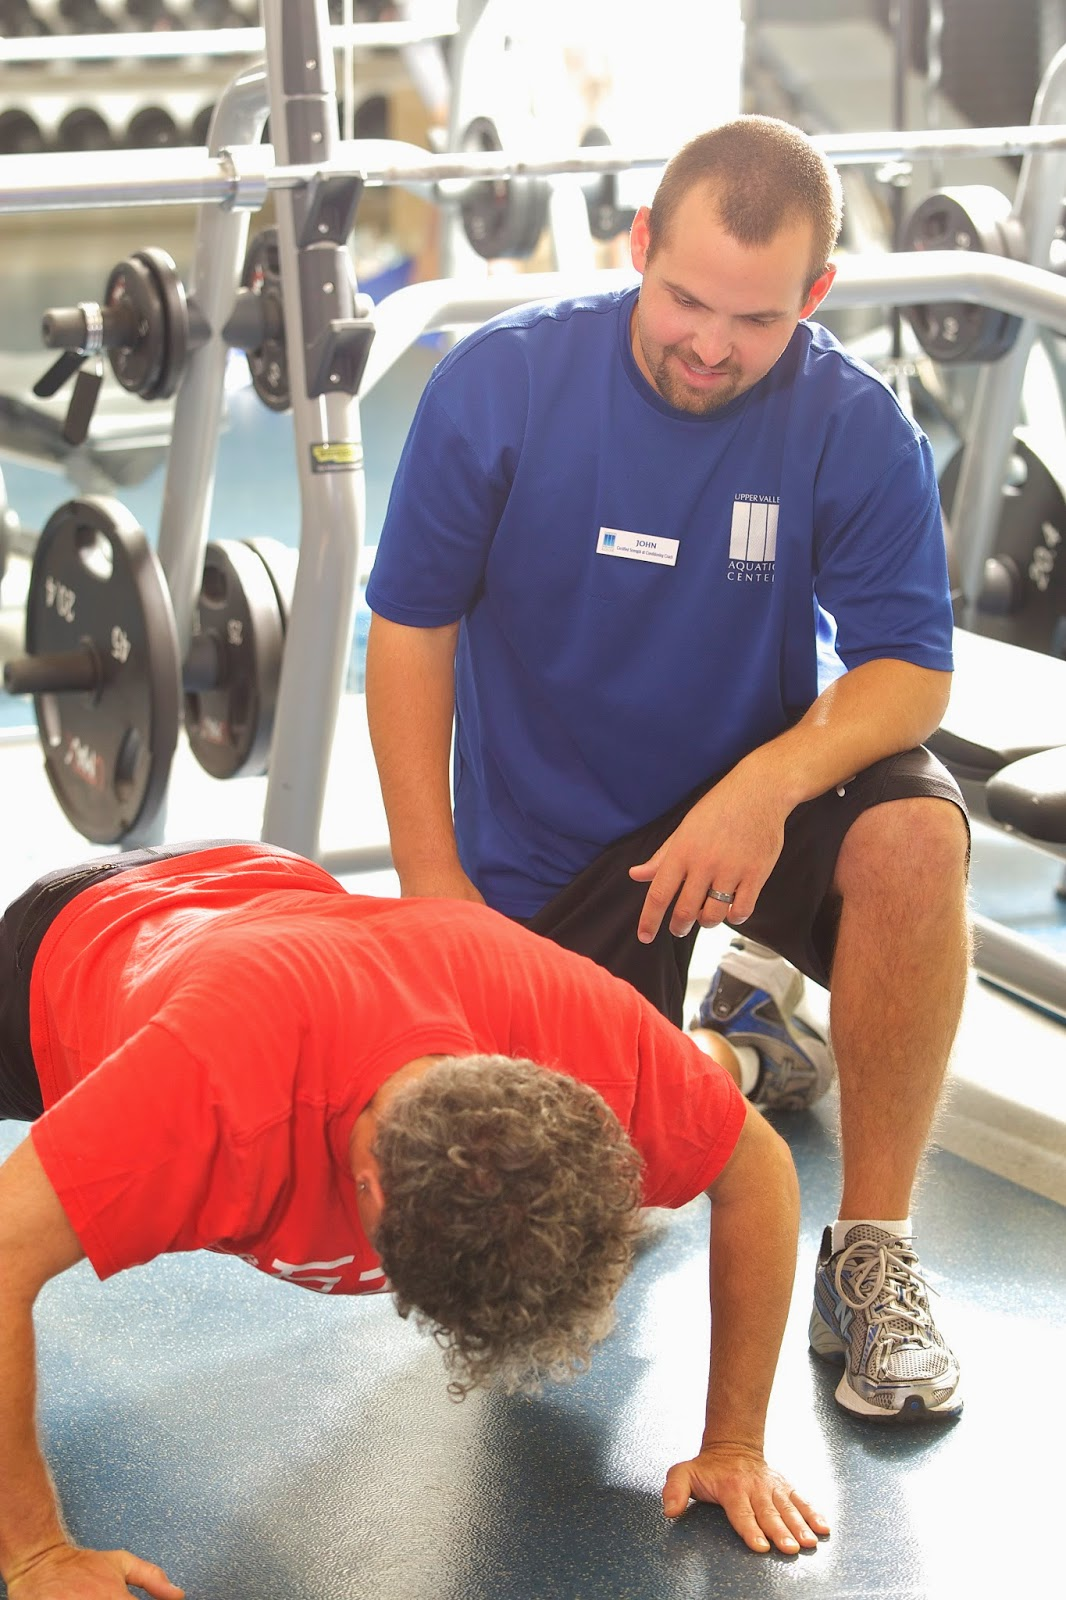 strength training programs start at your level swimming uvac there are many valuable benefits strength training research shows that if you engage in a consistent safe routine you will improve your range of